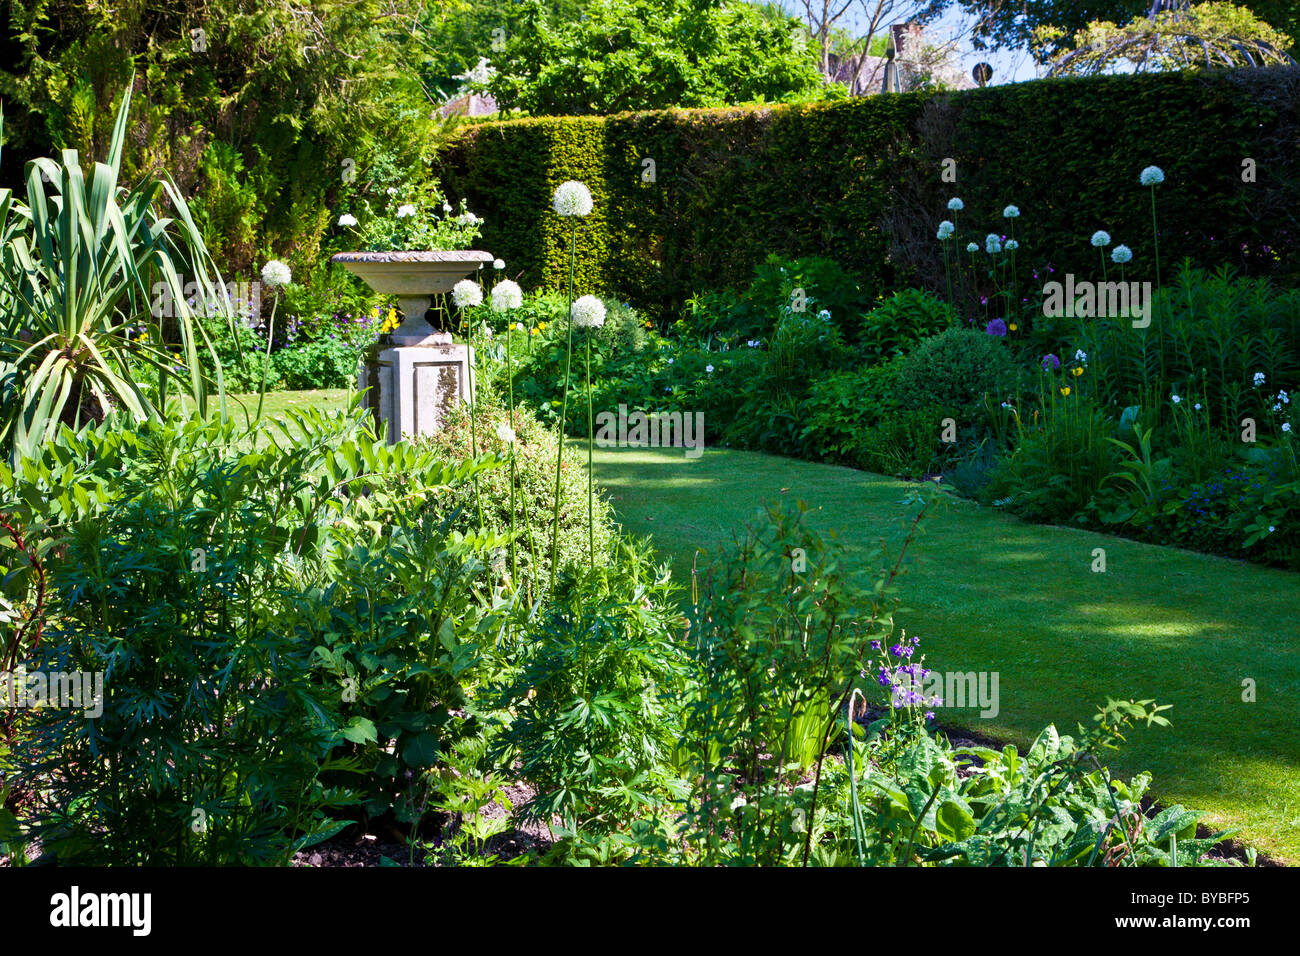 A Small Lawn In An English Country Garden In Summer With A Stone Planter On  A